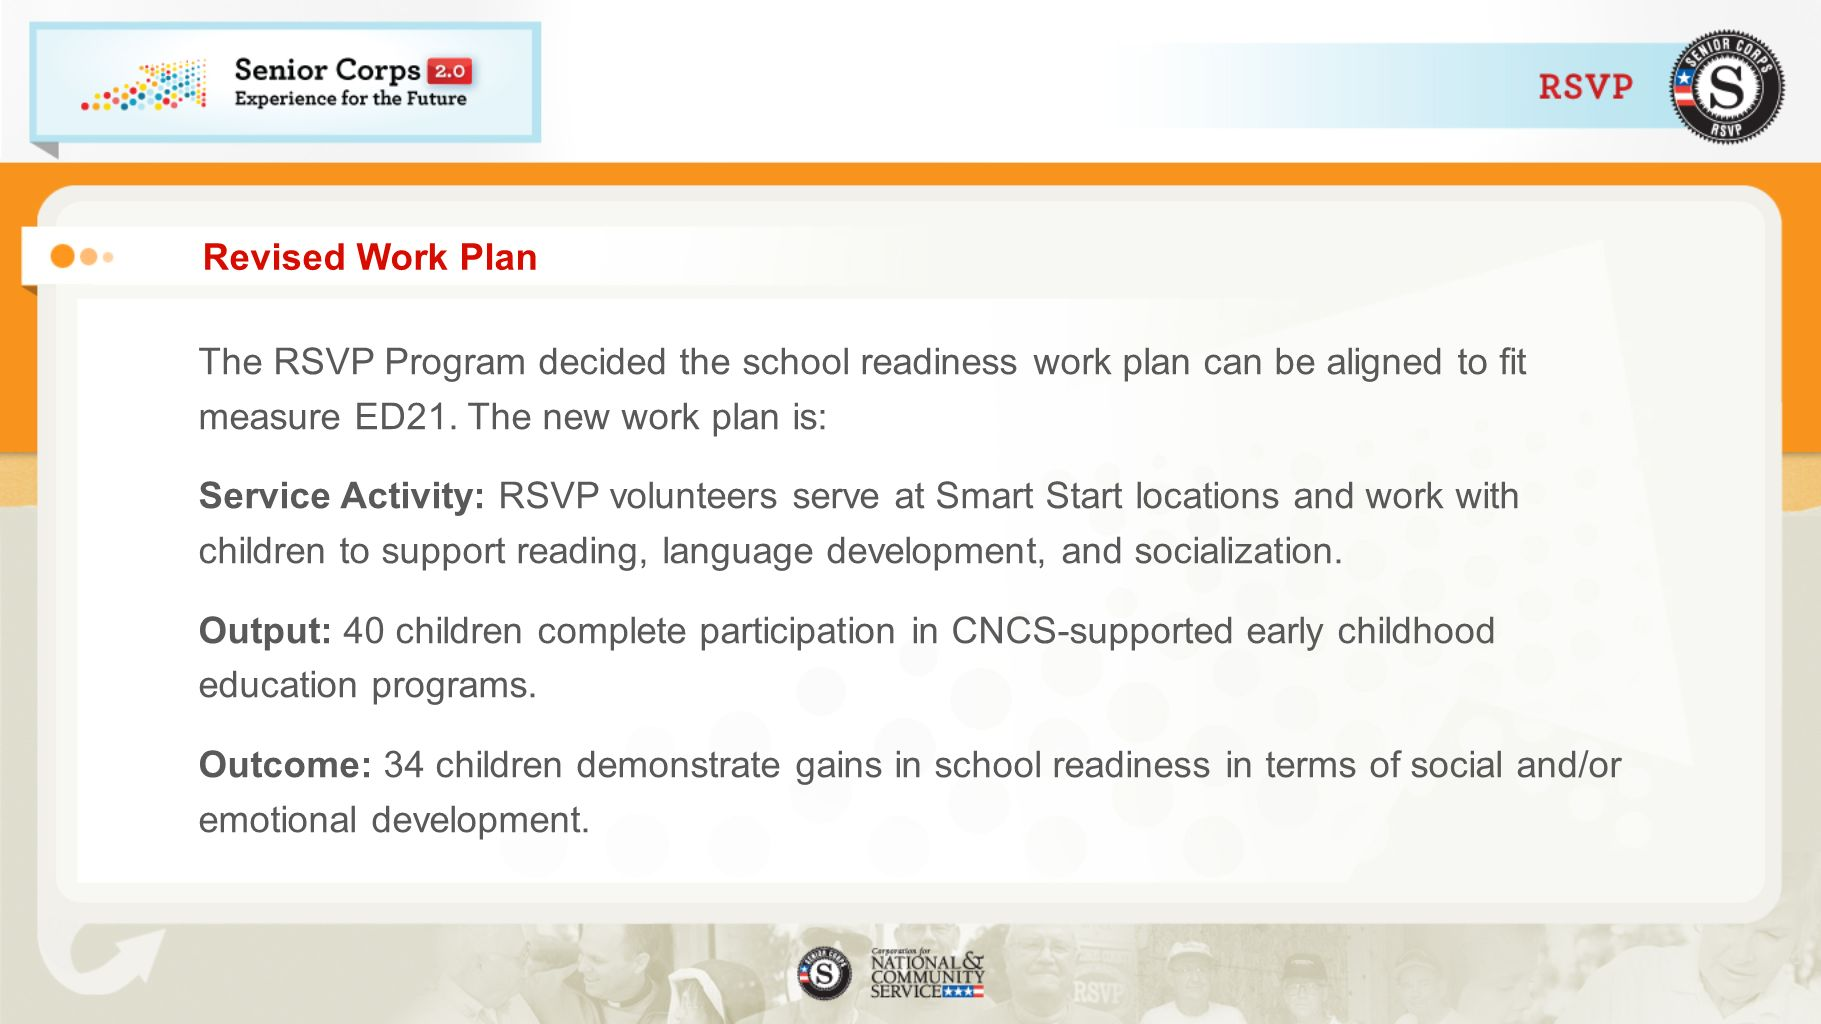 Revised Work Plan The RSVP Program decided the school readiness work plan can be aligned to fit measure ED21. The new work plan is: